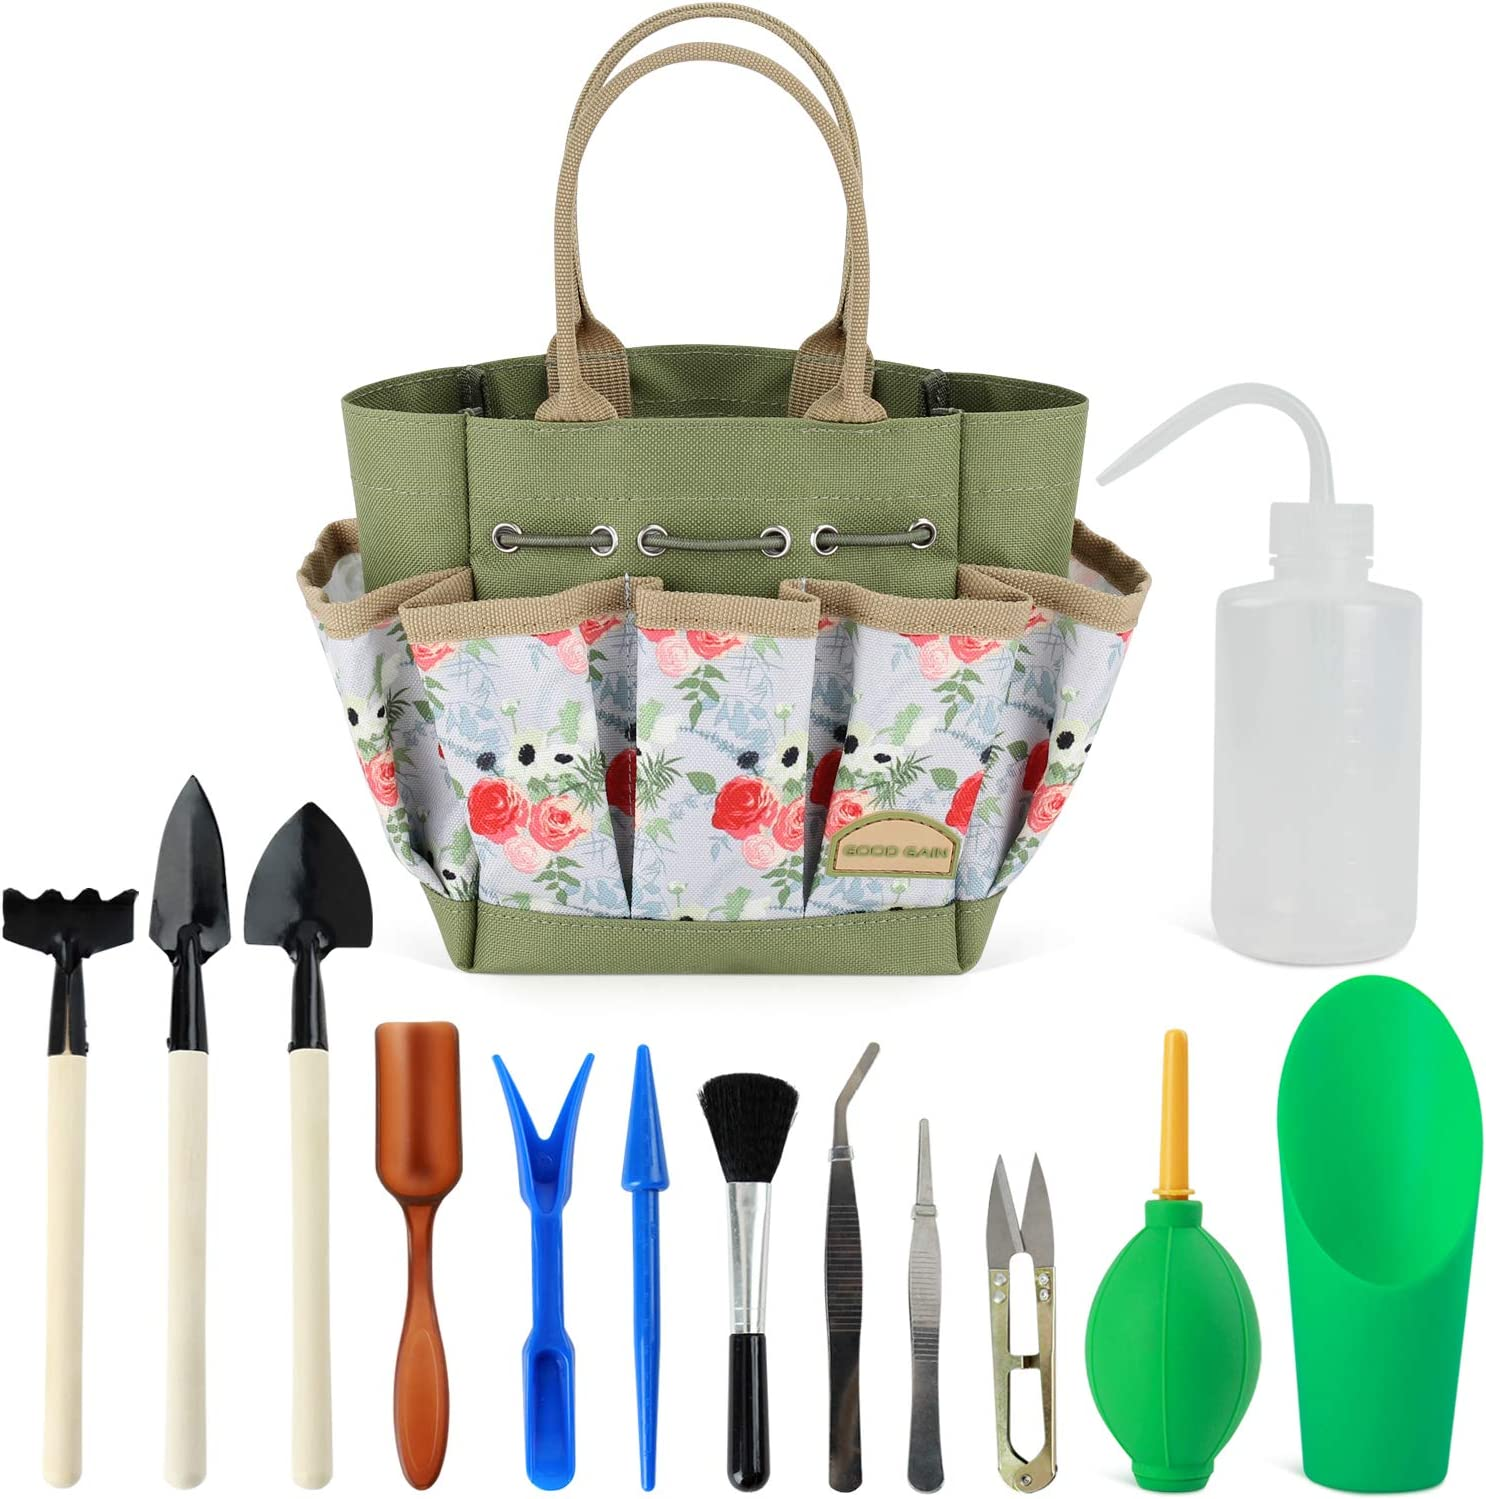 Good GAIN Garden Succulent Kit with Organizer Bag,Indoor Mini Hand Gardening Tool Set, 14 Pieces Tools for Bonsai Planter Miniature Fairy Planting Care